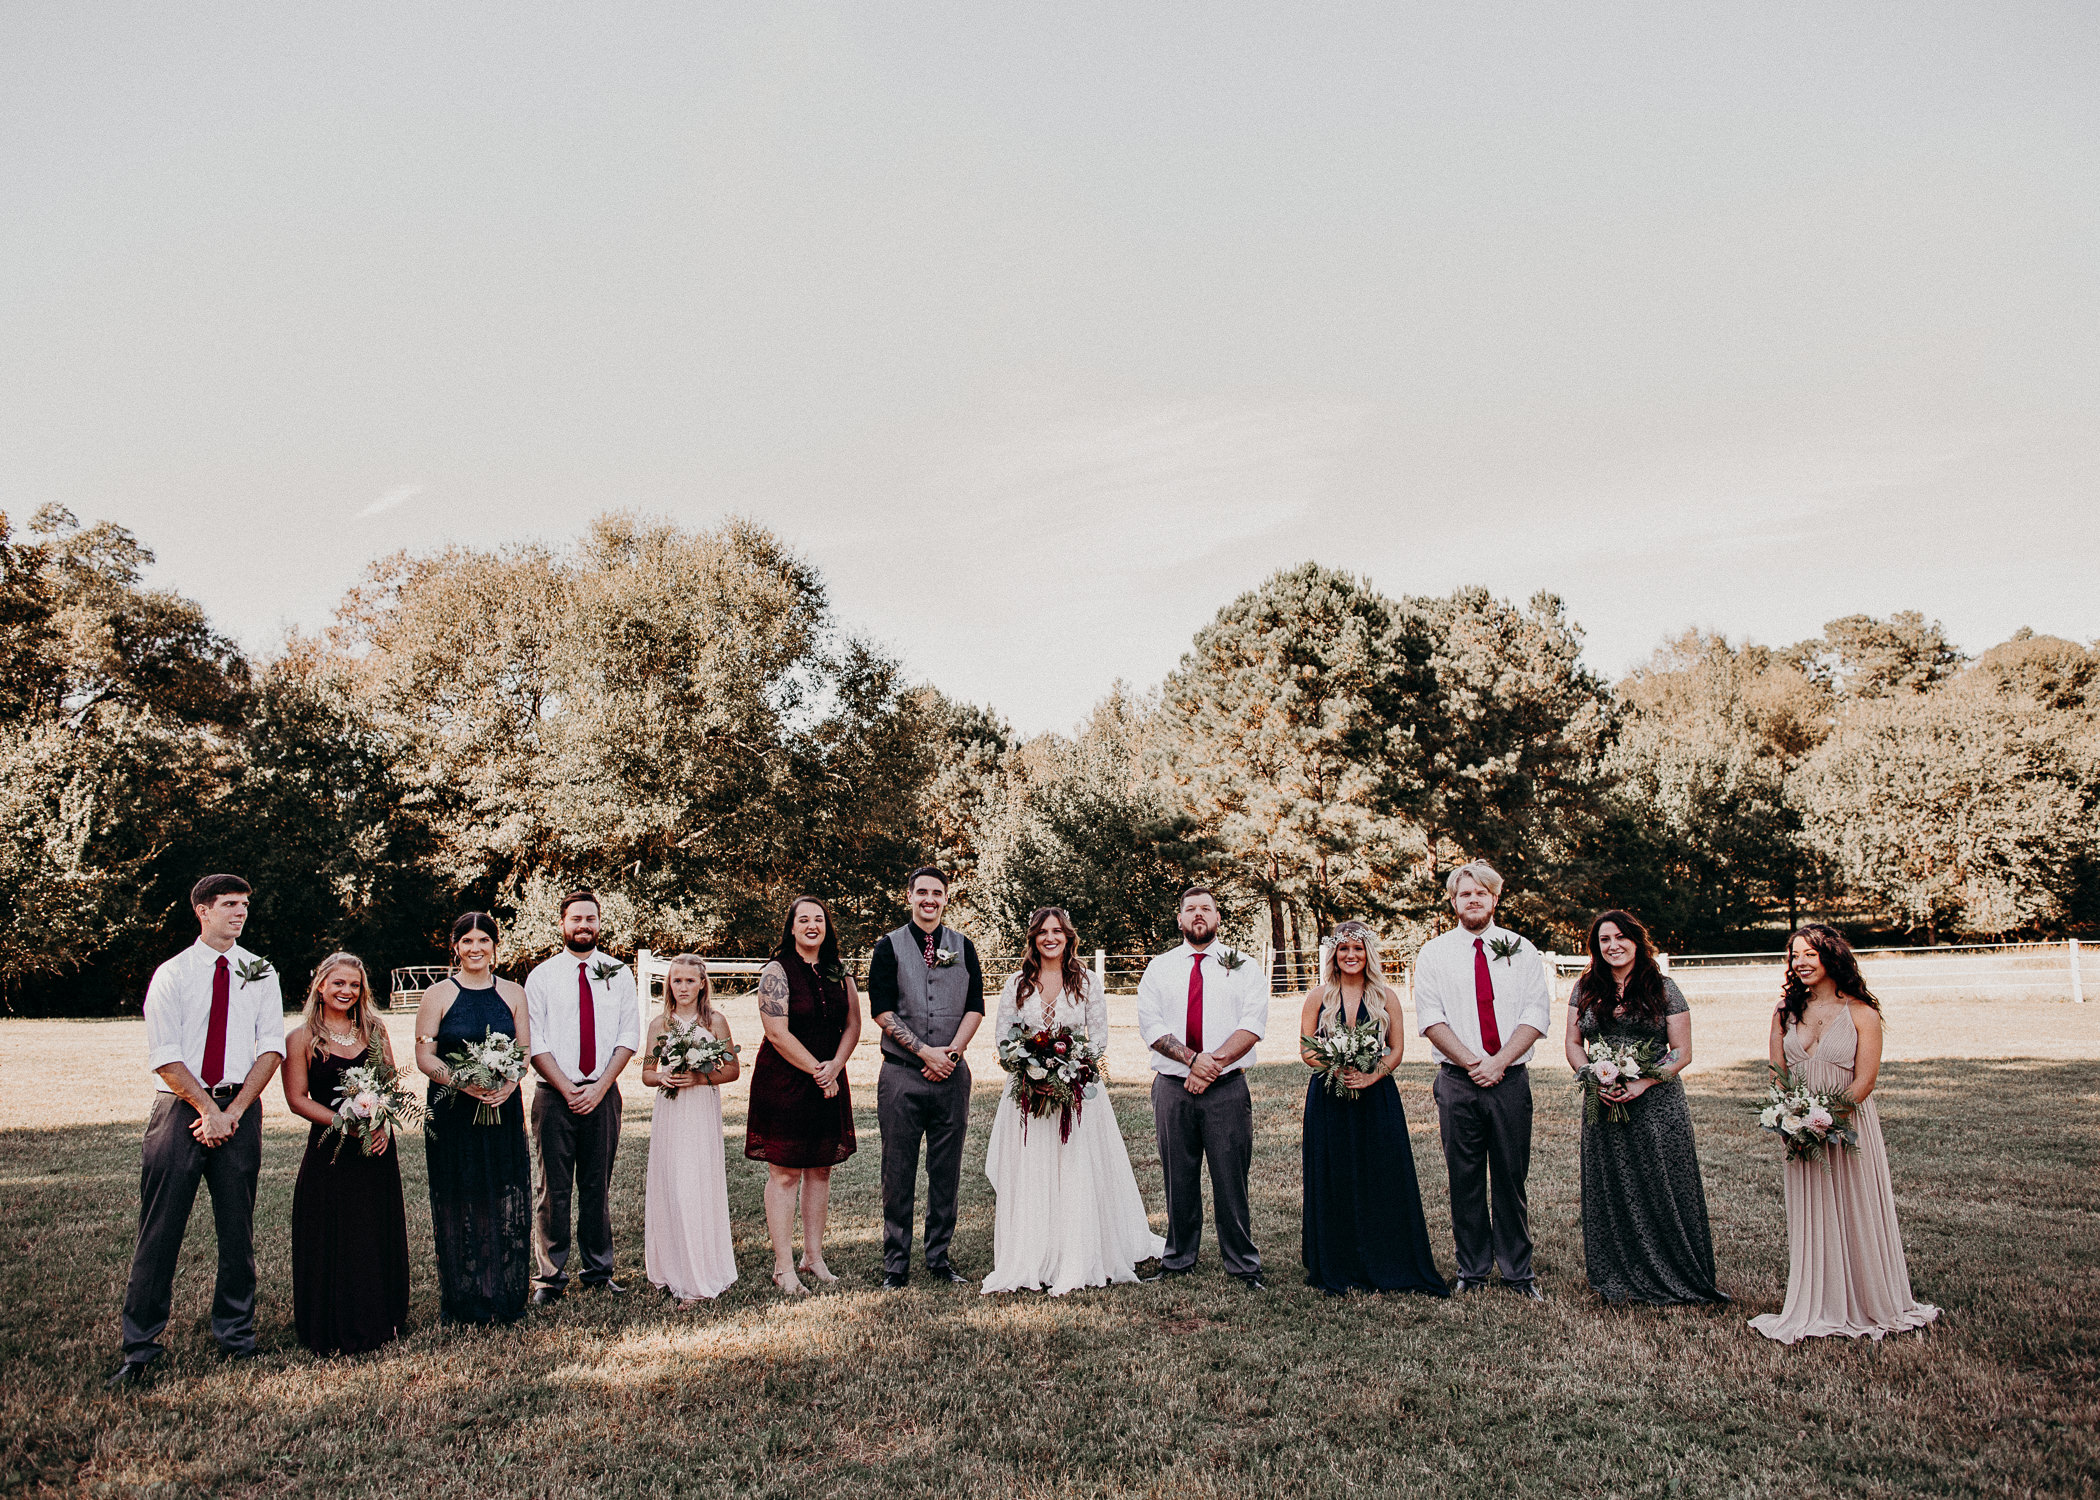 93 - Wedding groom and bride with bridal party portraits - Atlanta wedding photographer.JPG